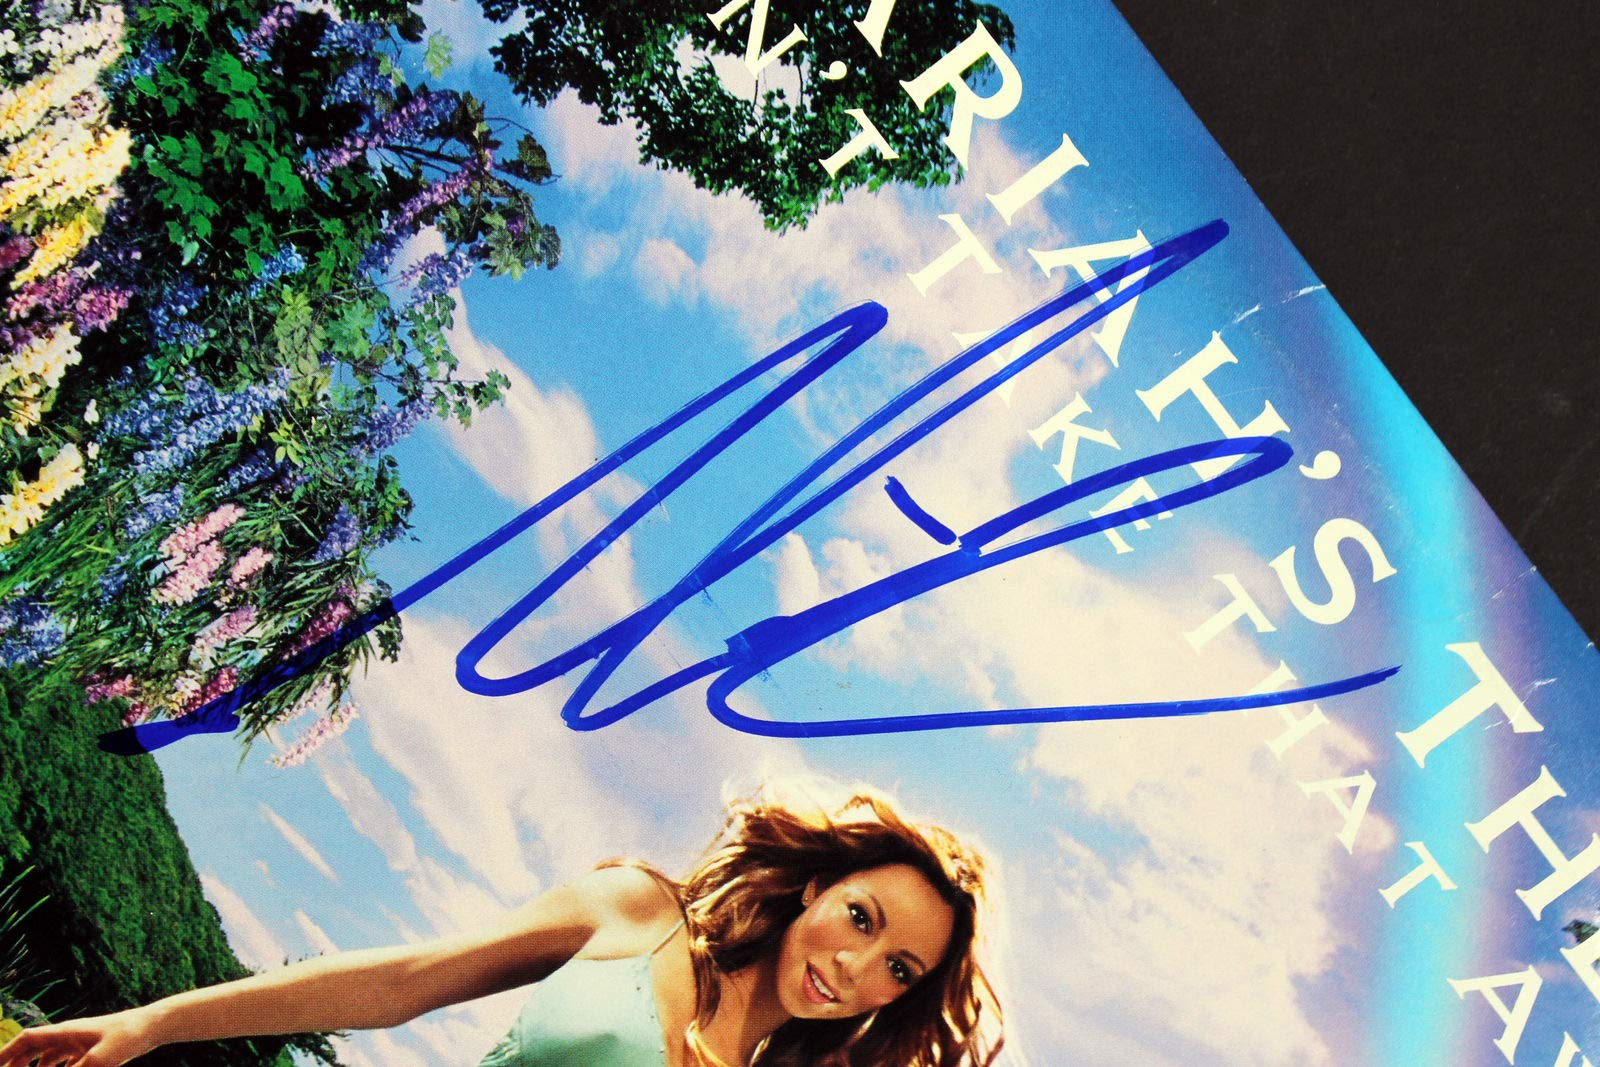 Mariah Carey Autographed Signed Mariah's Theme Can'T Take That Away Album Cover Beckett Authentic